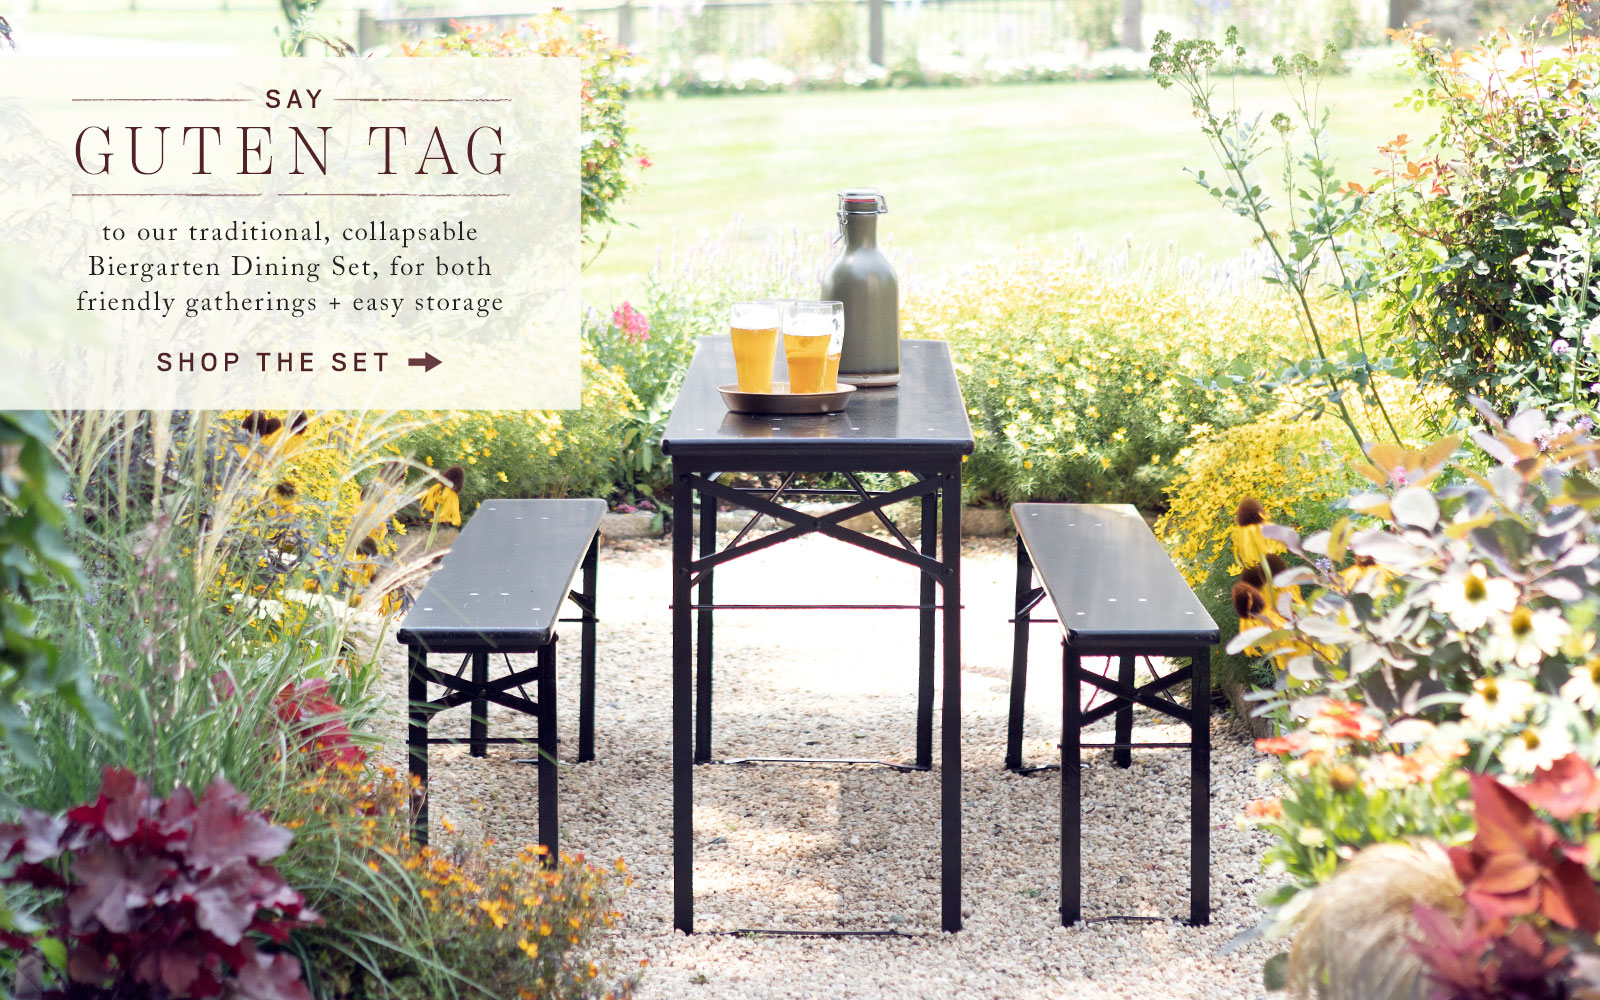 Say Guten Tag to our traditional, collapsable Biergarten Dining Set